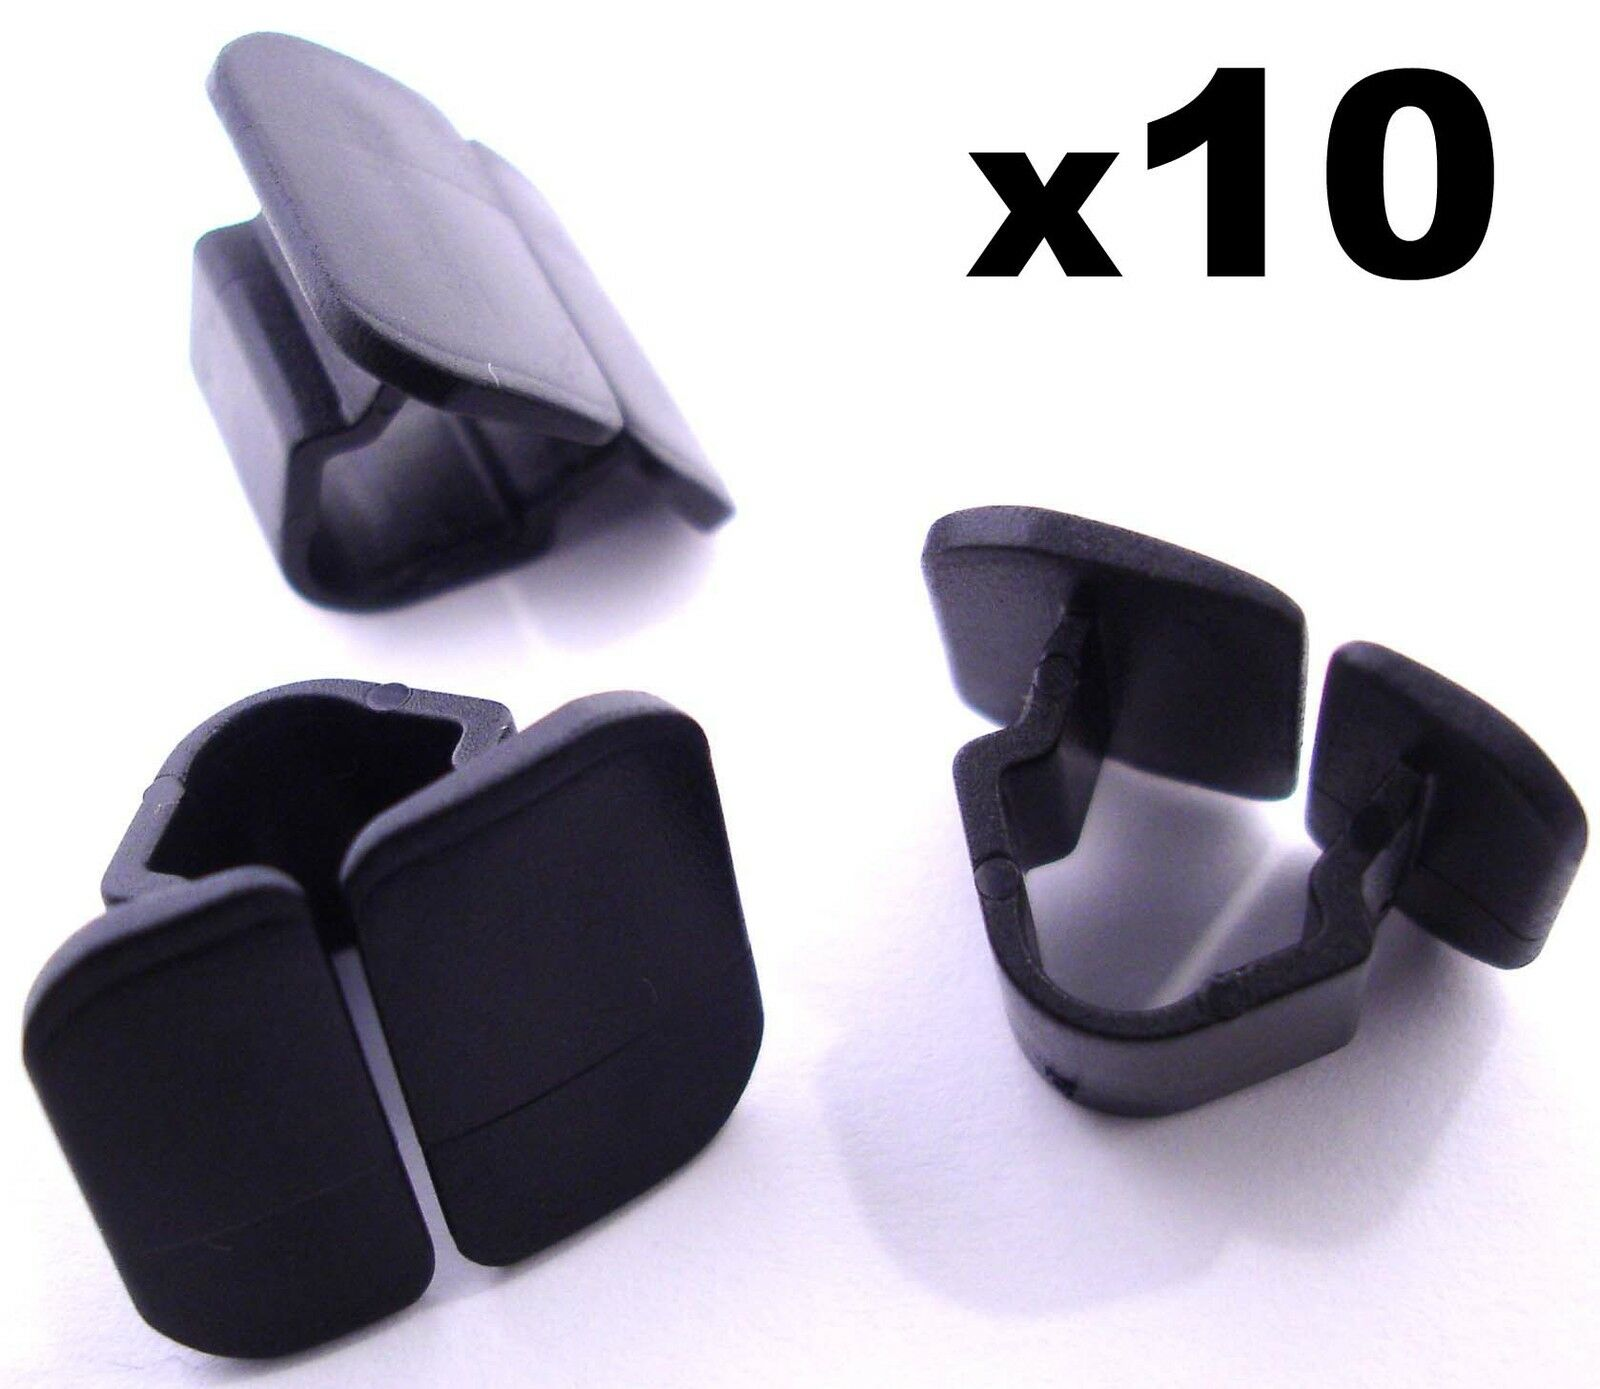 10x Vw Bonnet Insulation Plastic Clips Retainer For Hood Wiring Harness 1 Of 1free Shipping